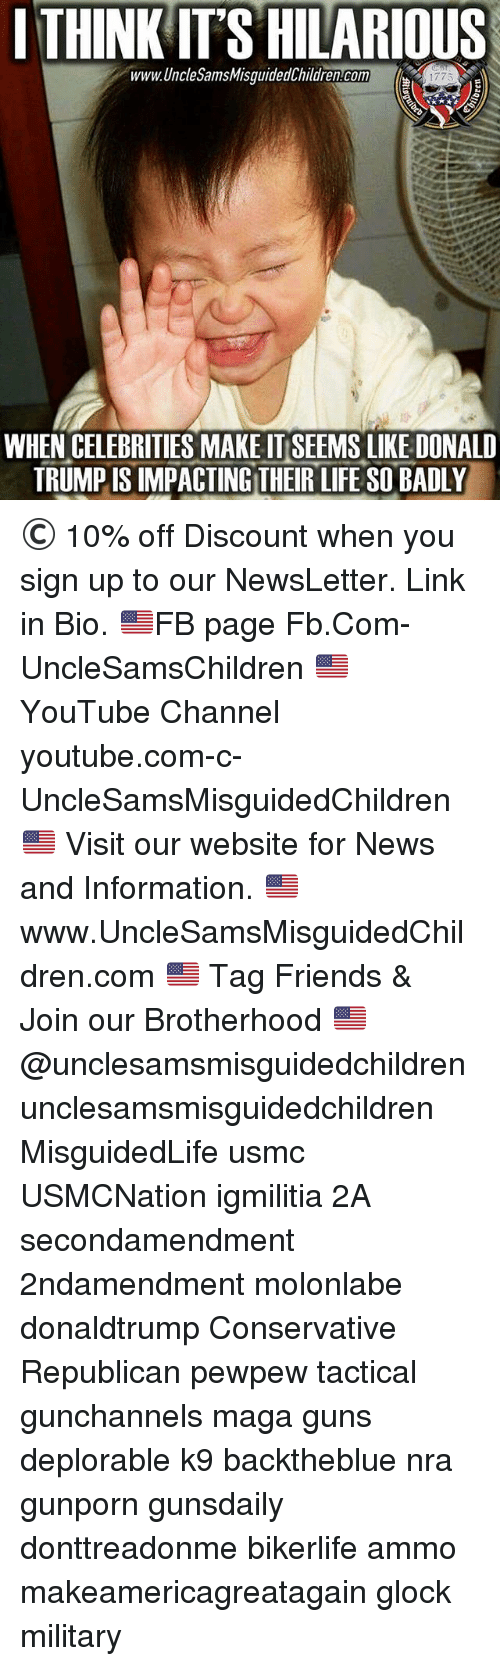 Its Hilarious: I THINK IT'S HILARIOUS  www.UncleSamsMisquidedChildren.com  1775  WHEN CELEBRITIES MAKE IT SEEMS LIKE DONALD  TRUMP IS IMPACTING THEIR LIFE SO BADLY © 10% off Discount when you sign up to our NewsLetter. Link in Bio. 🇺🇸FB page Fb.Com-UncleSamsChildren 🇺🇸YouTube Channel youtube.com-c-UncleSamsMisguidedChildren 🇺🇸 Visit our website for News and Information. 🇺🇸 www.UncleSamsMisguidedChildren.com 🇺🇸 Tag Friends & Join our Brotherhood 🇺🇸 @unclesamsmisguidedchildren unclesamsmisguidedchildren MisguidedLife usmc USMCNation igmilitia 2A secondamendment 2ndamendment molonlabe donaldtrump Conservative Republican pewpew tactical gunchannels maga guns deplorable k9 backtheblue nra gunporn gunsdaily donttreadonme bikerlife ammo makeamericagreatagain glock military